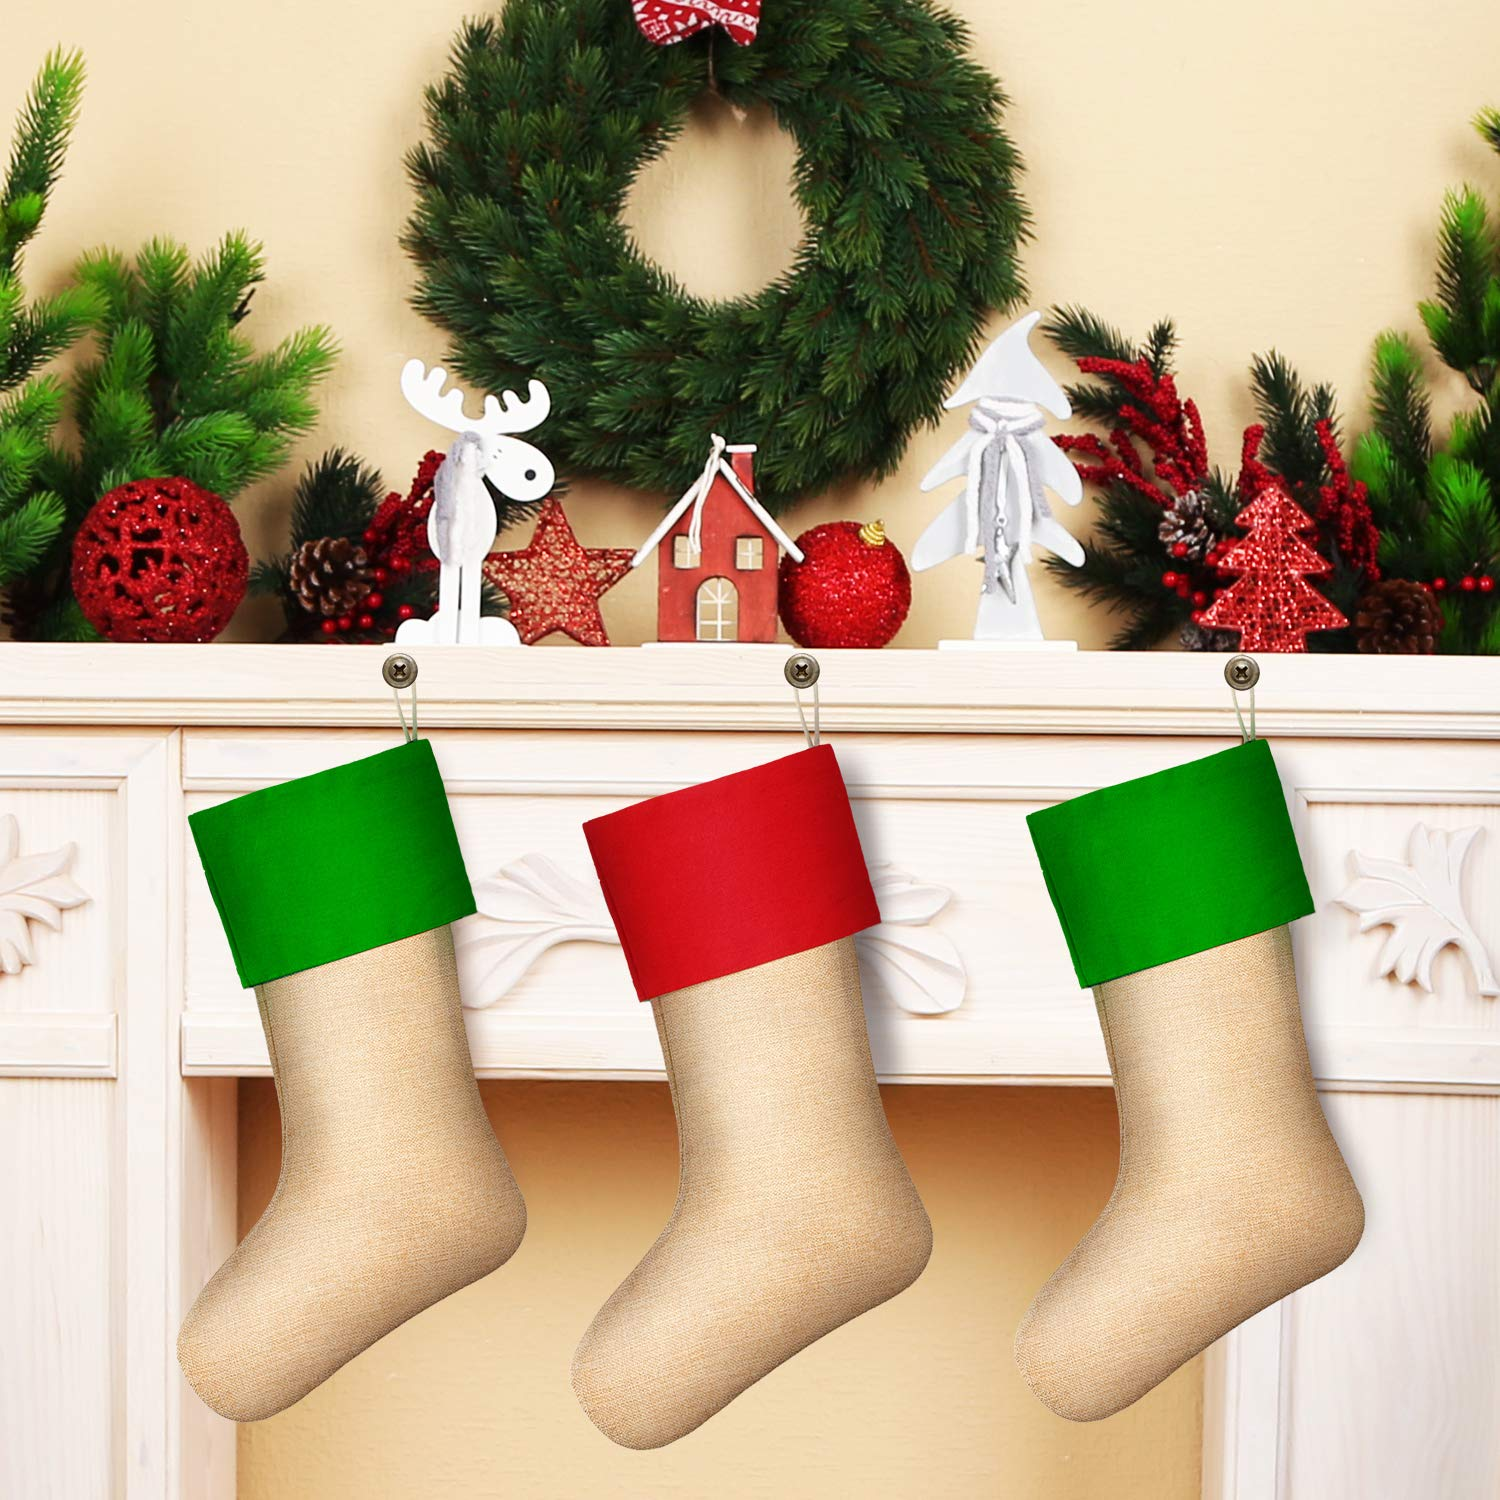 Sumind 6 Packs Burlap Christmas Stockings for Christmas Decorations or DIY Flaxen